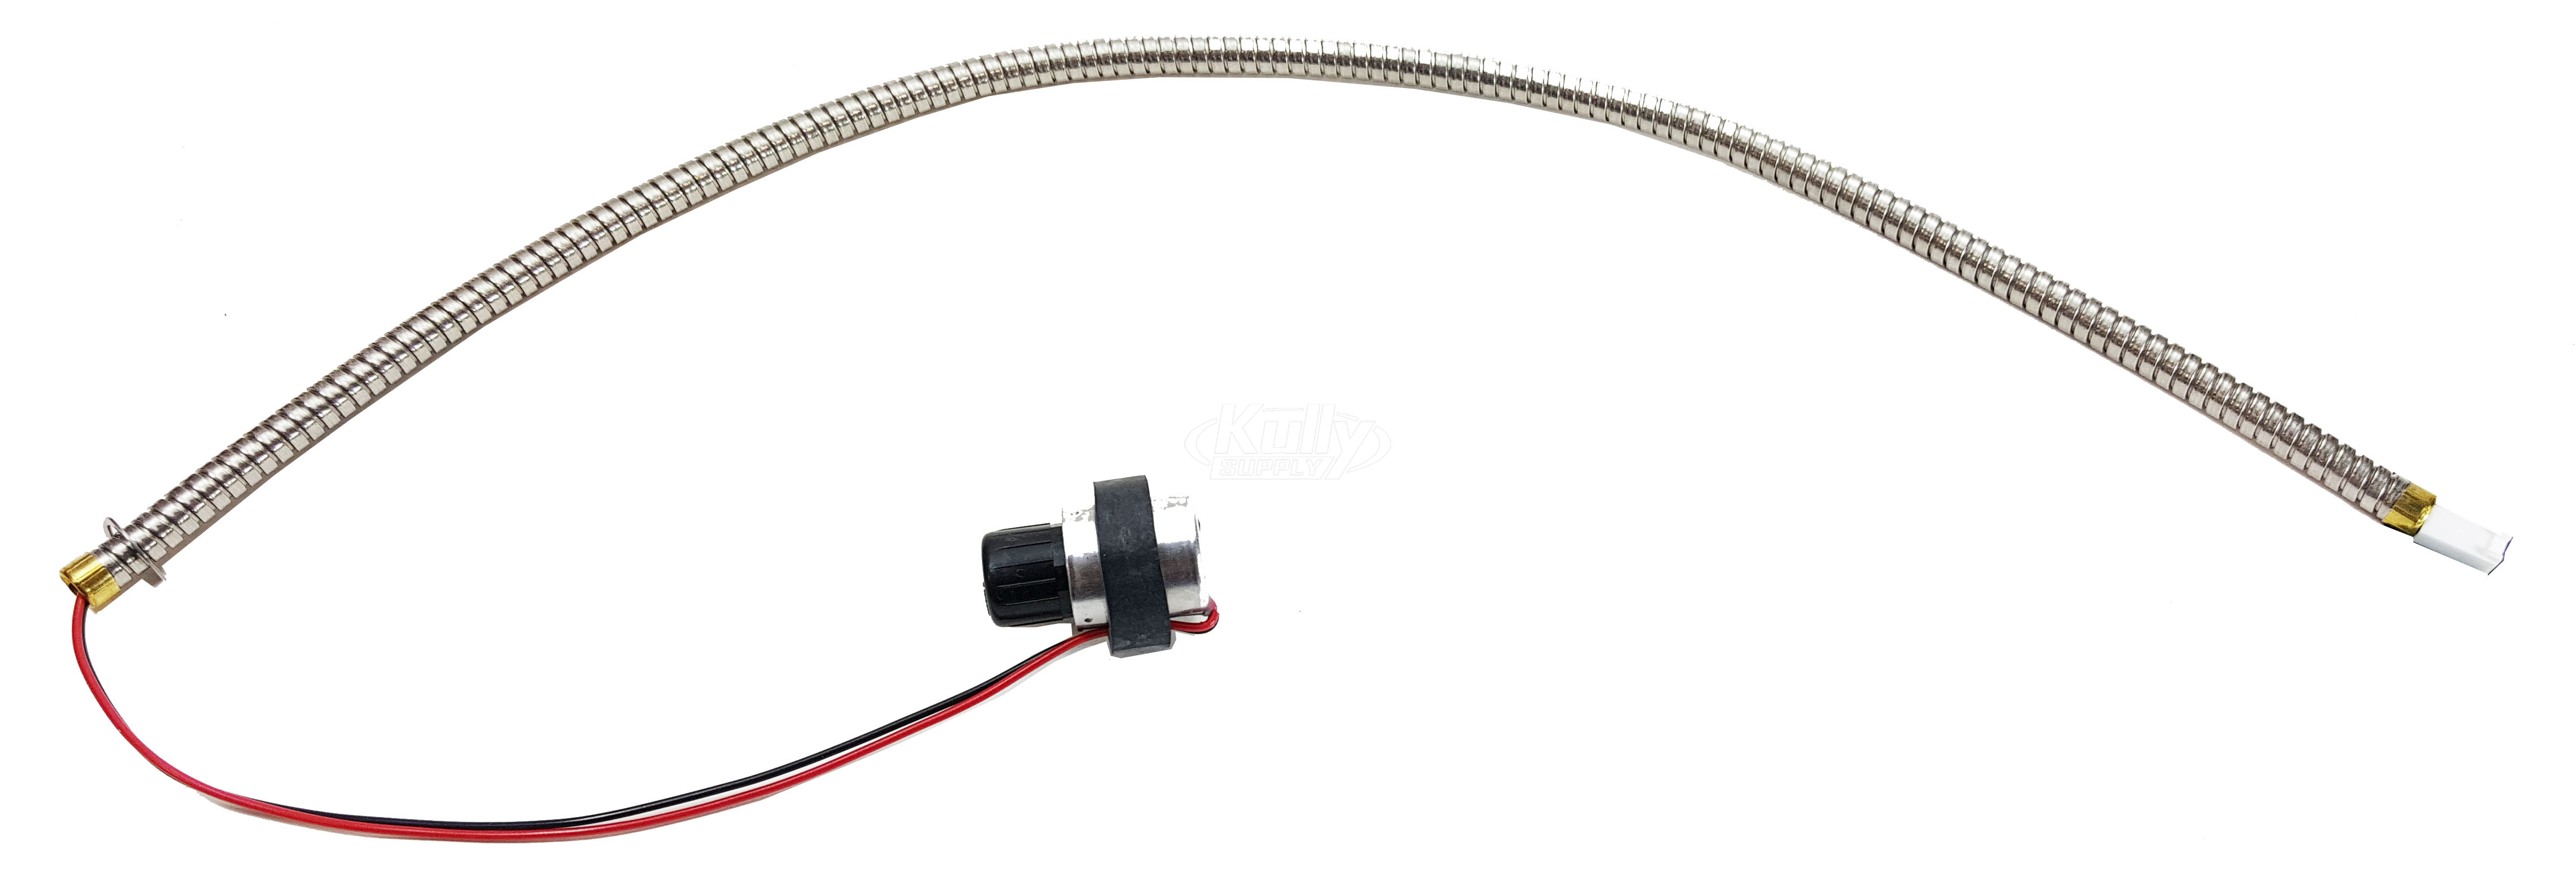 Sloan ETF-742-A Solenoid With Armored Cable Wire Only | KullySupply.com